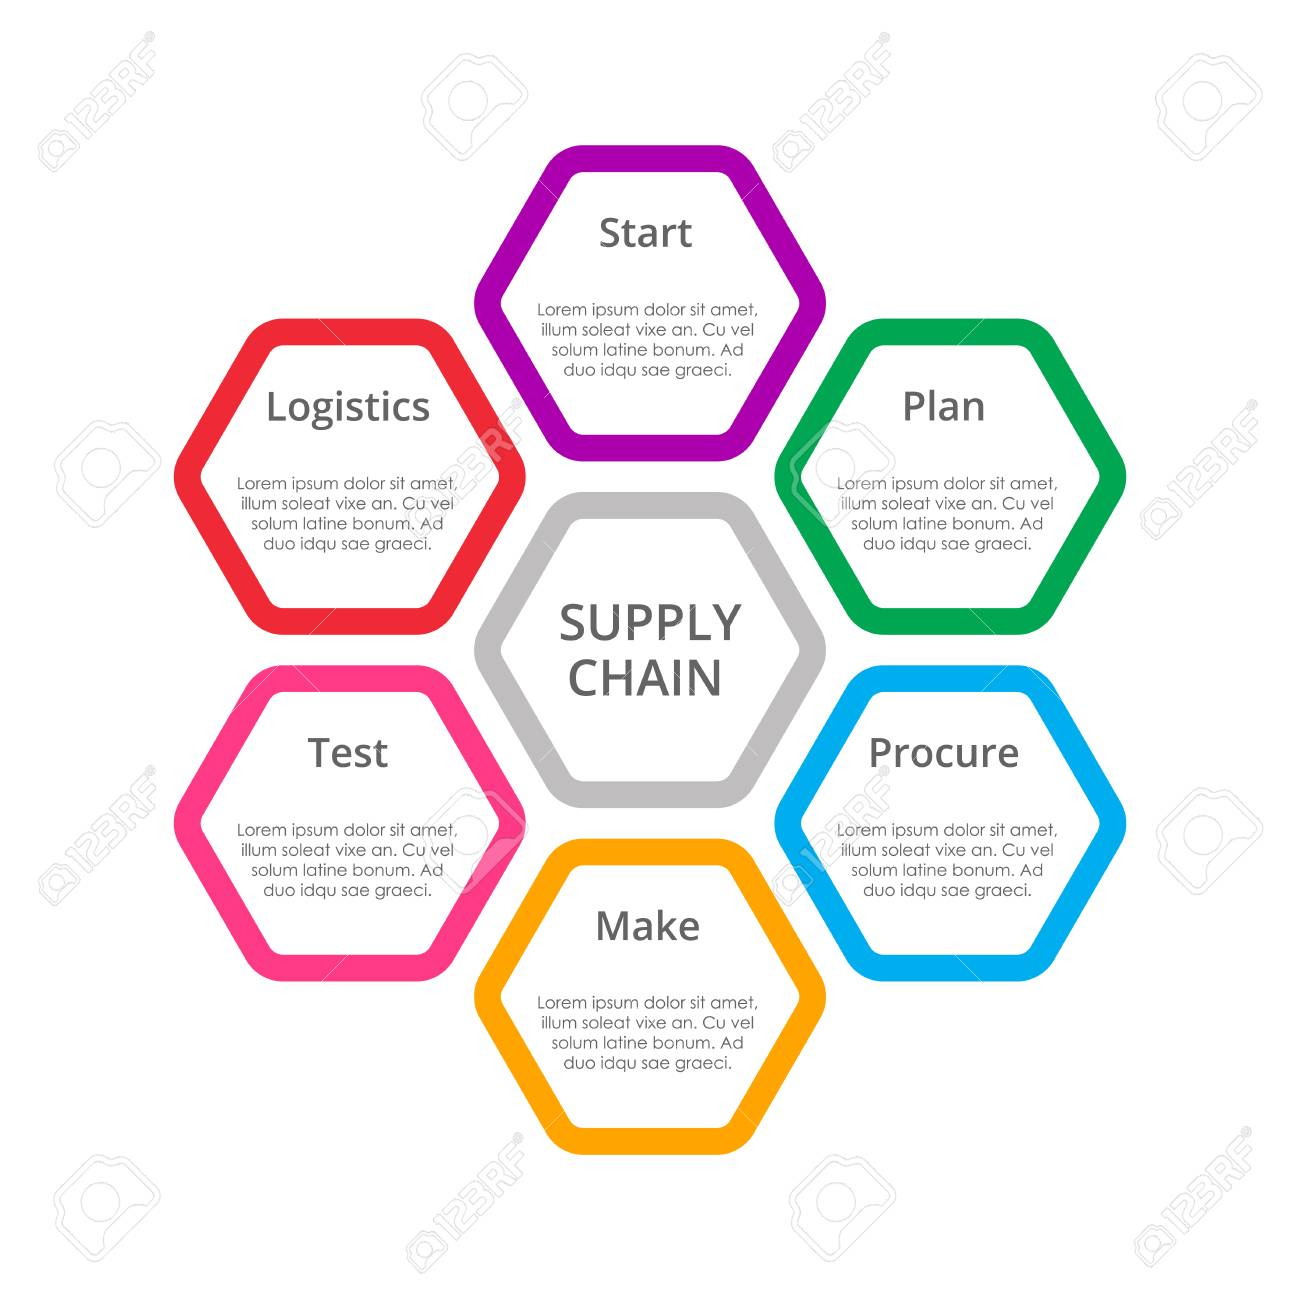 Supply Chain Diagram Template For Business. Royalty Free Cliparts ...